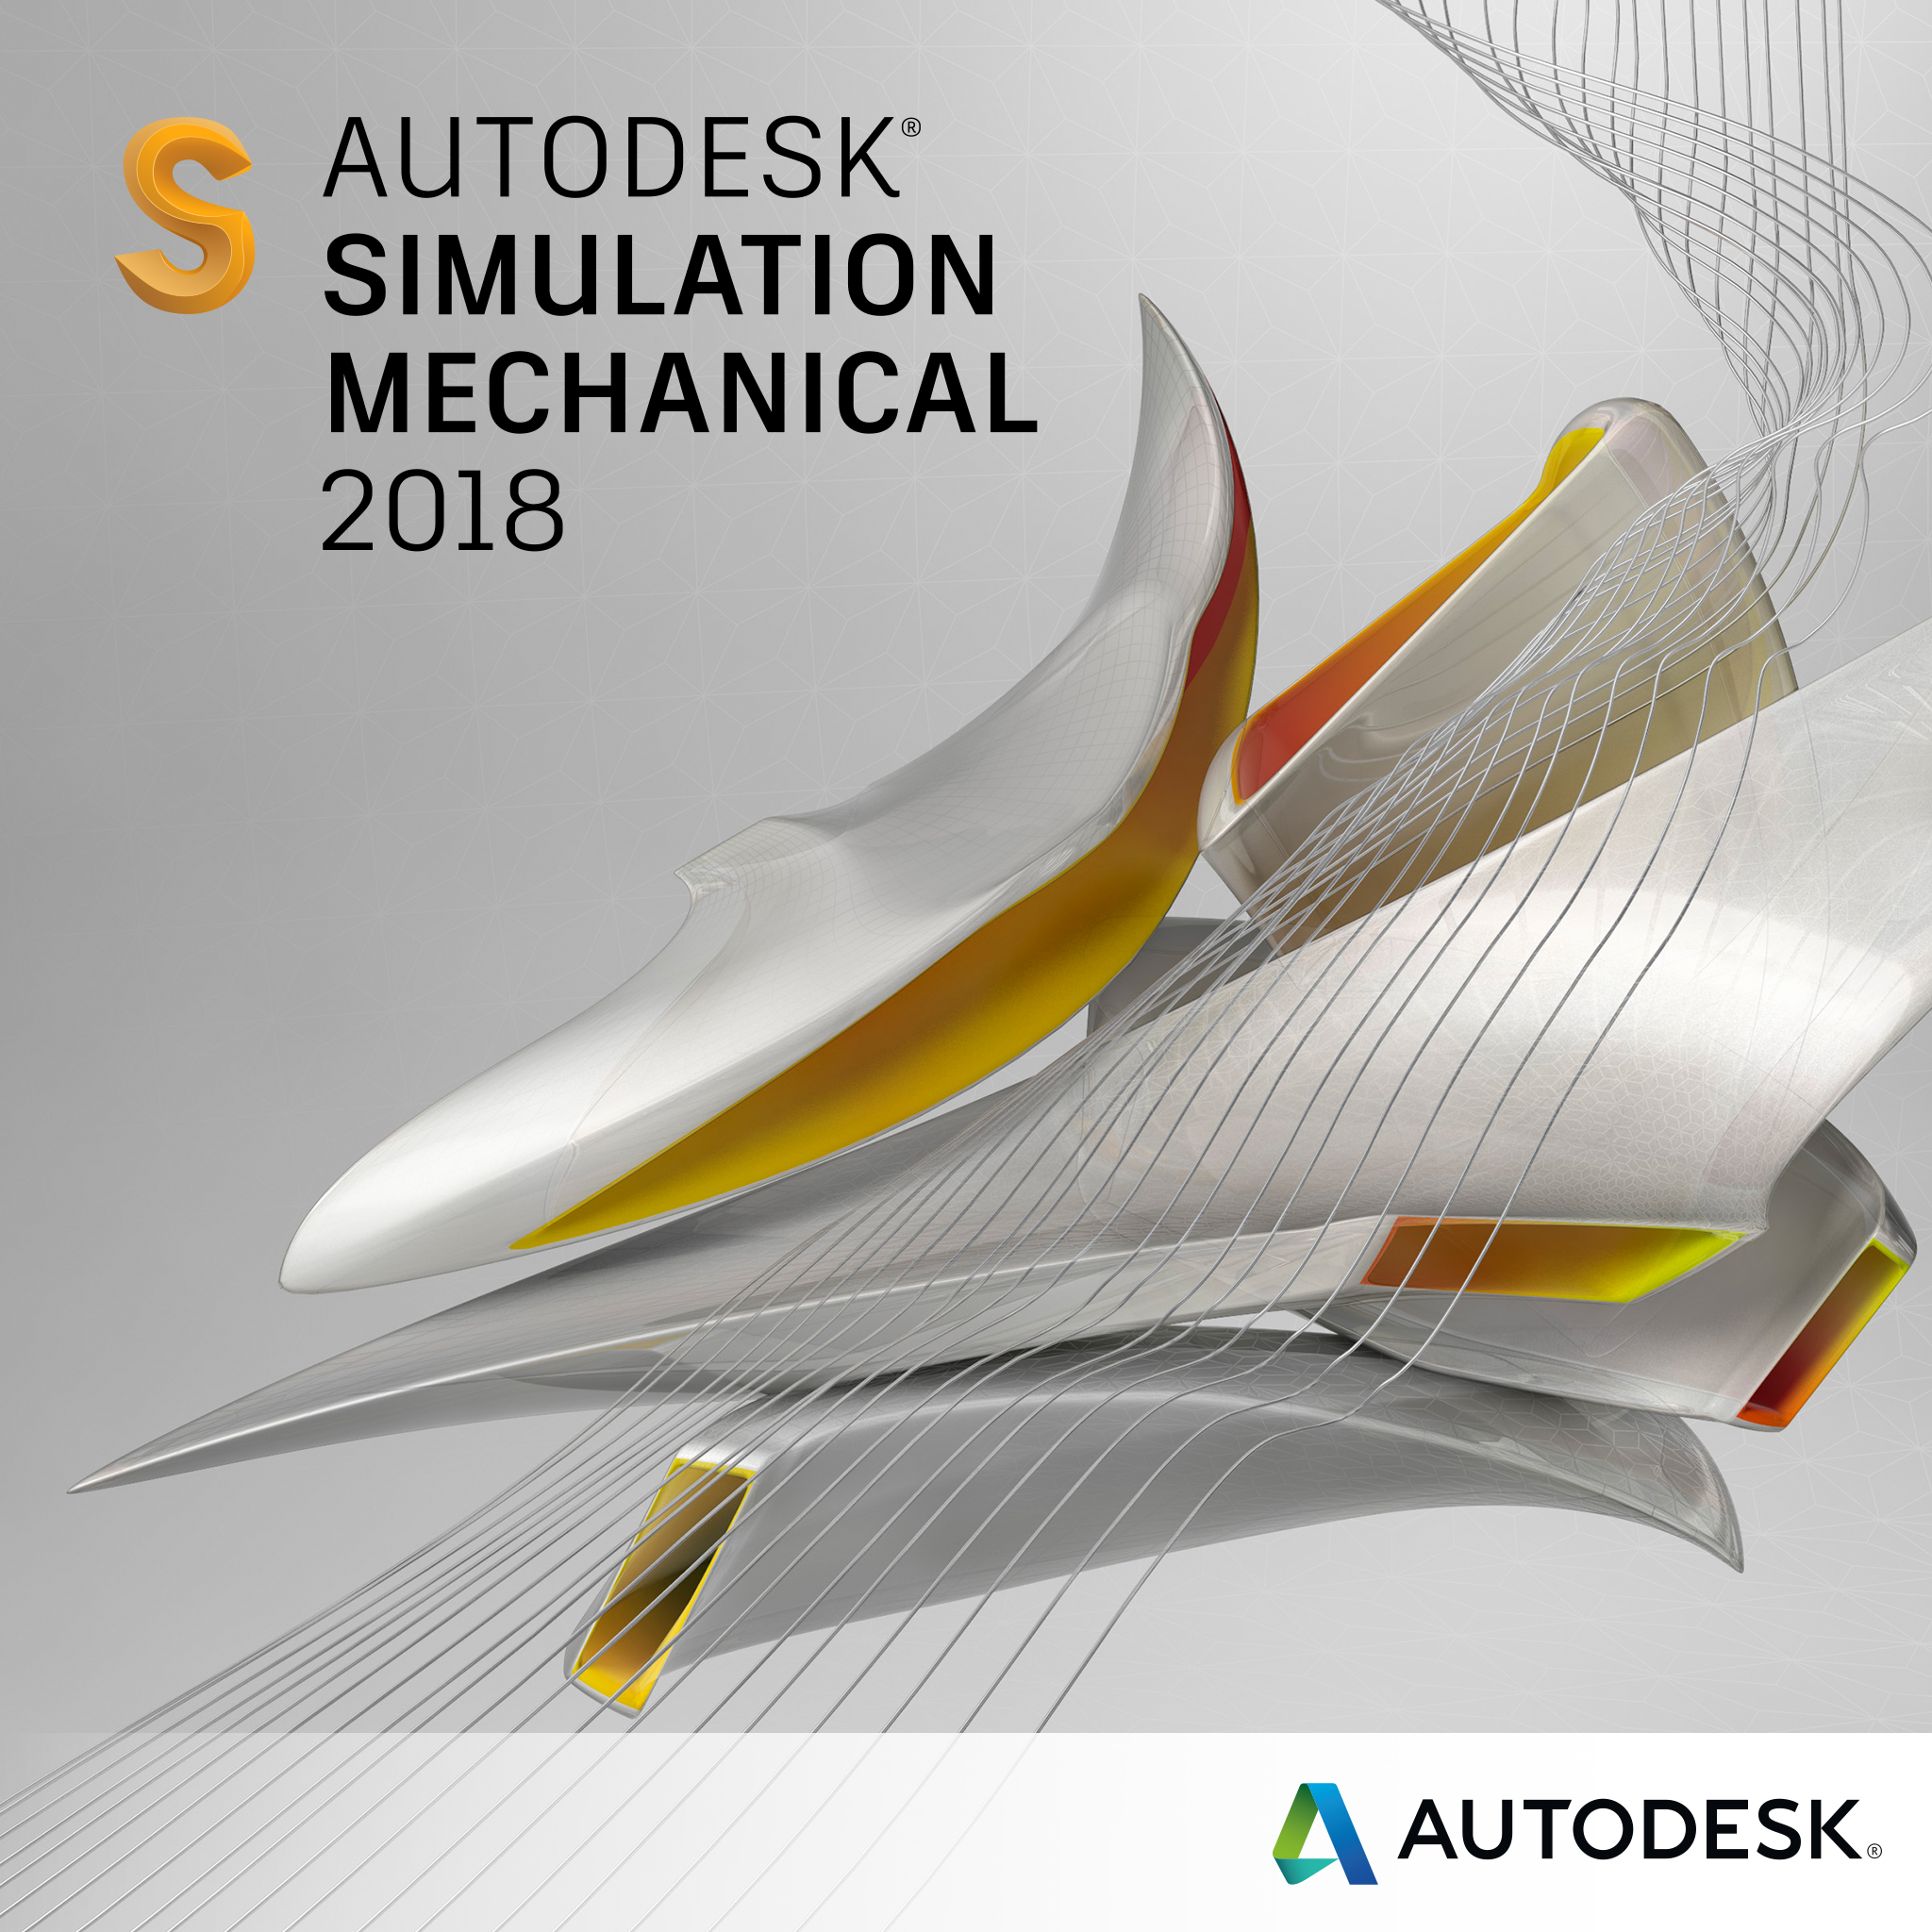 Autodesk Simulation Mechanichal